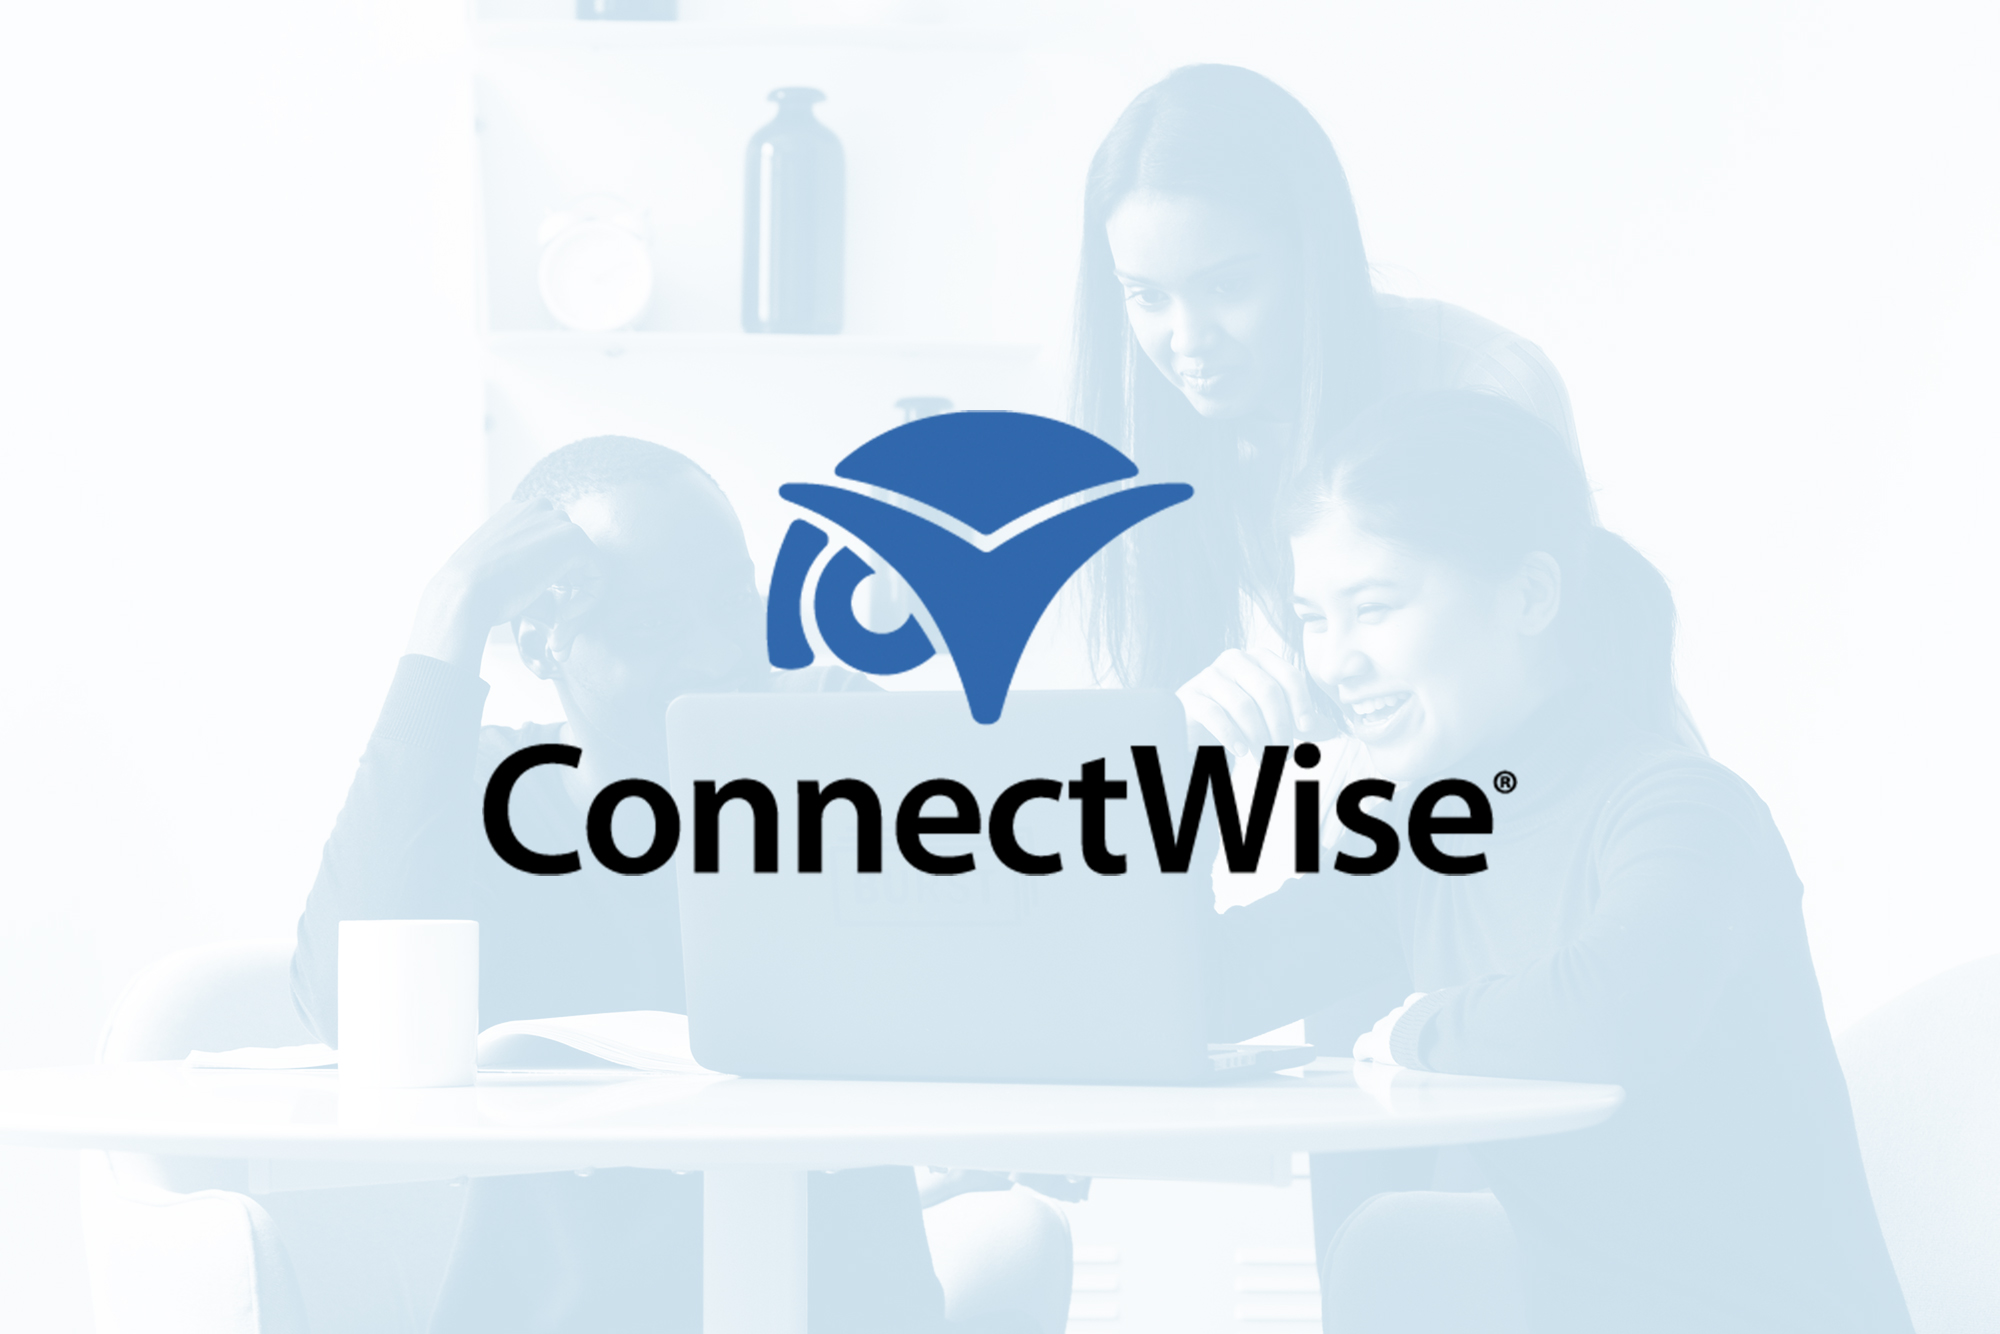 Connectwise Logo over faded picture of employees working together on laptop